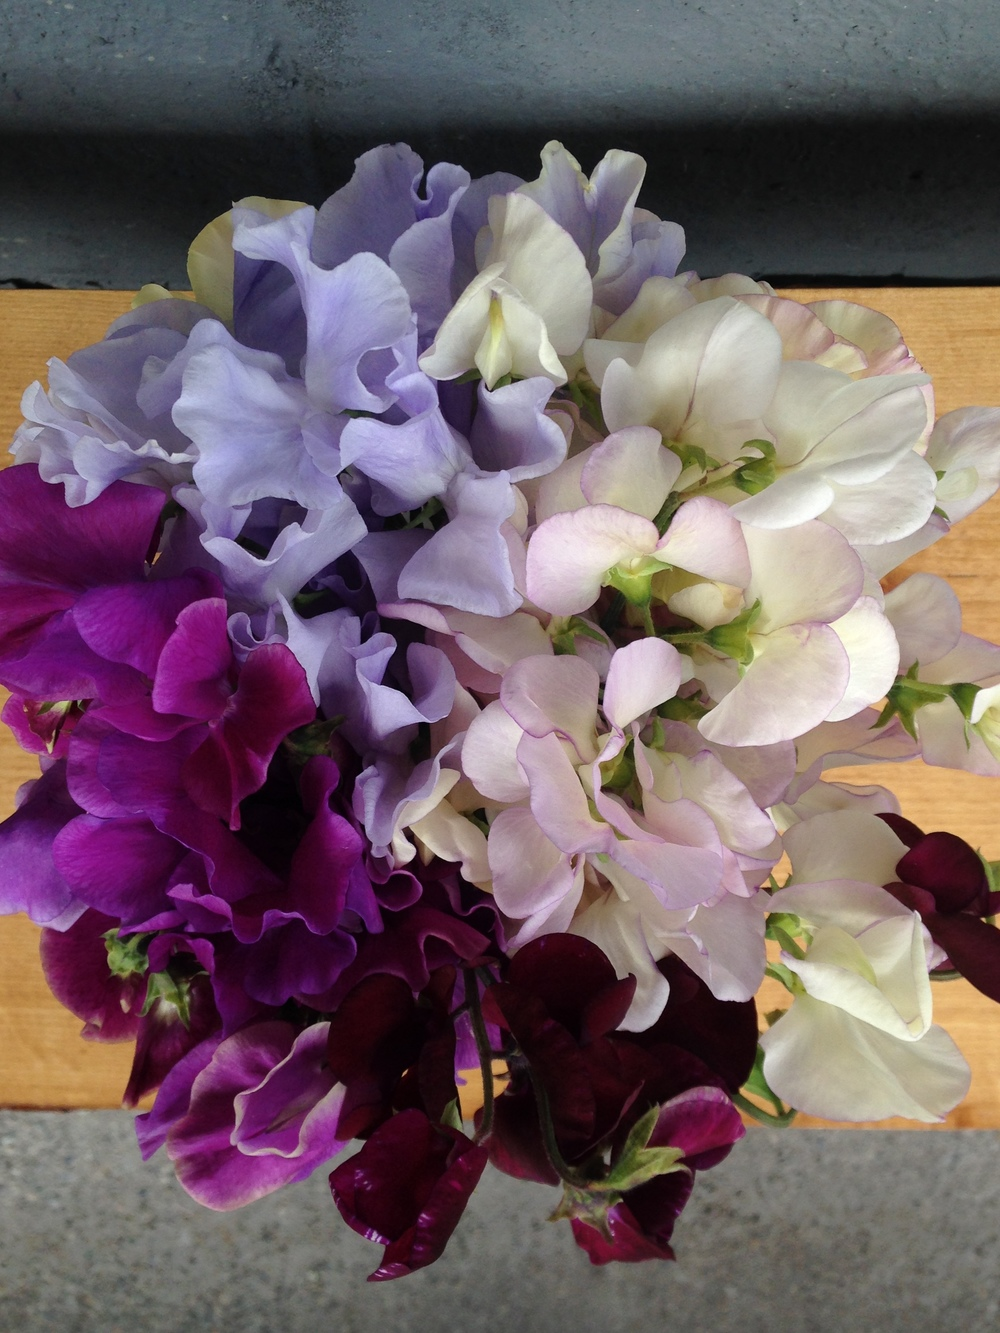 Fifty shades of purple. Sweet peas from the Black House cutting garden.